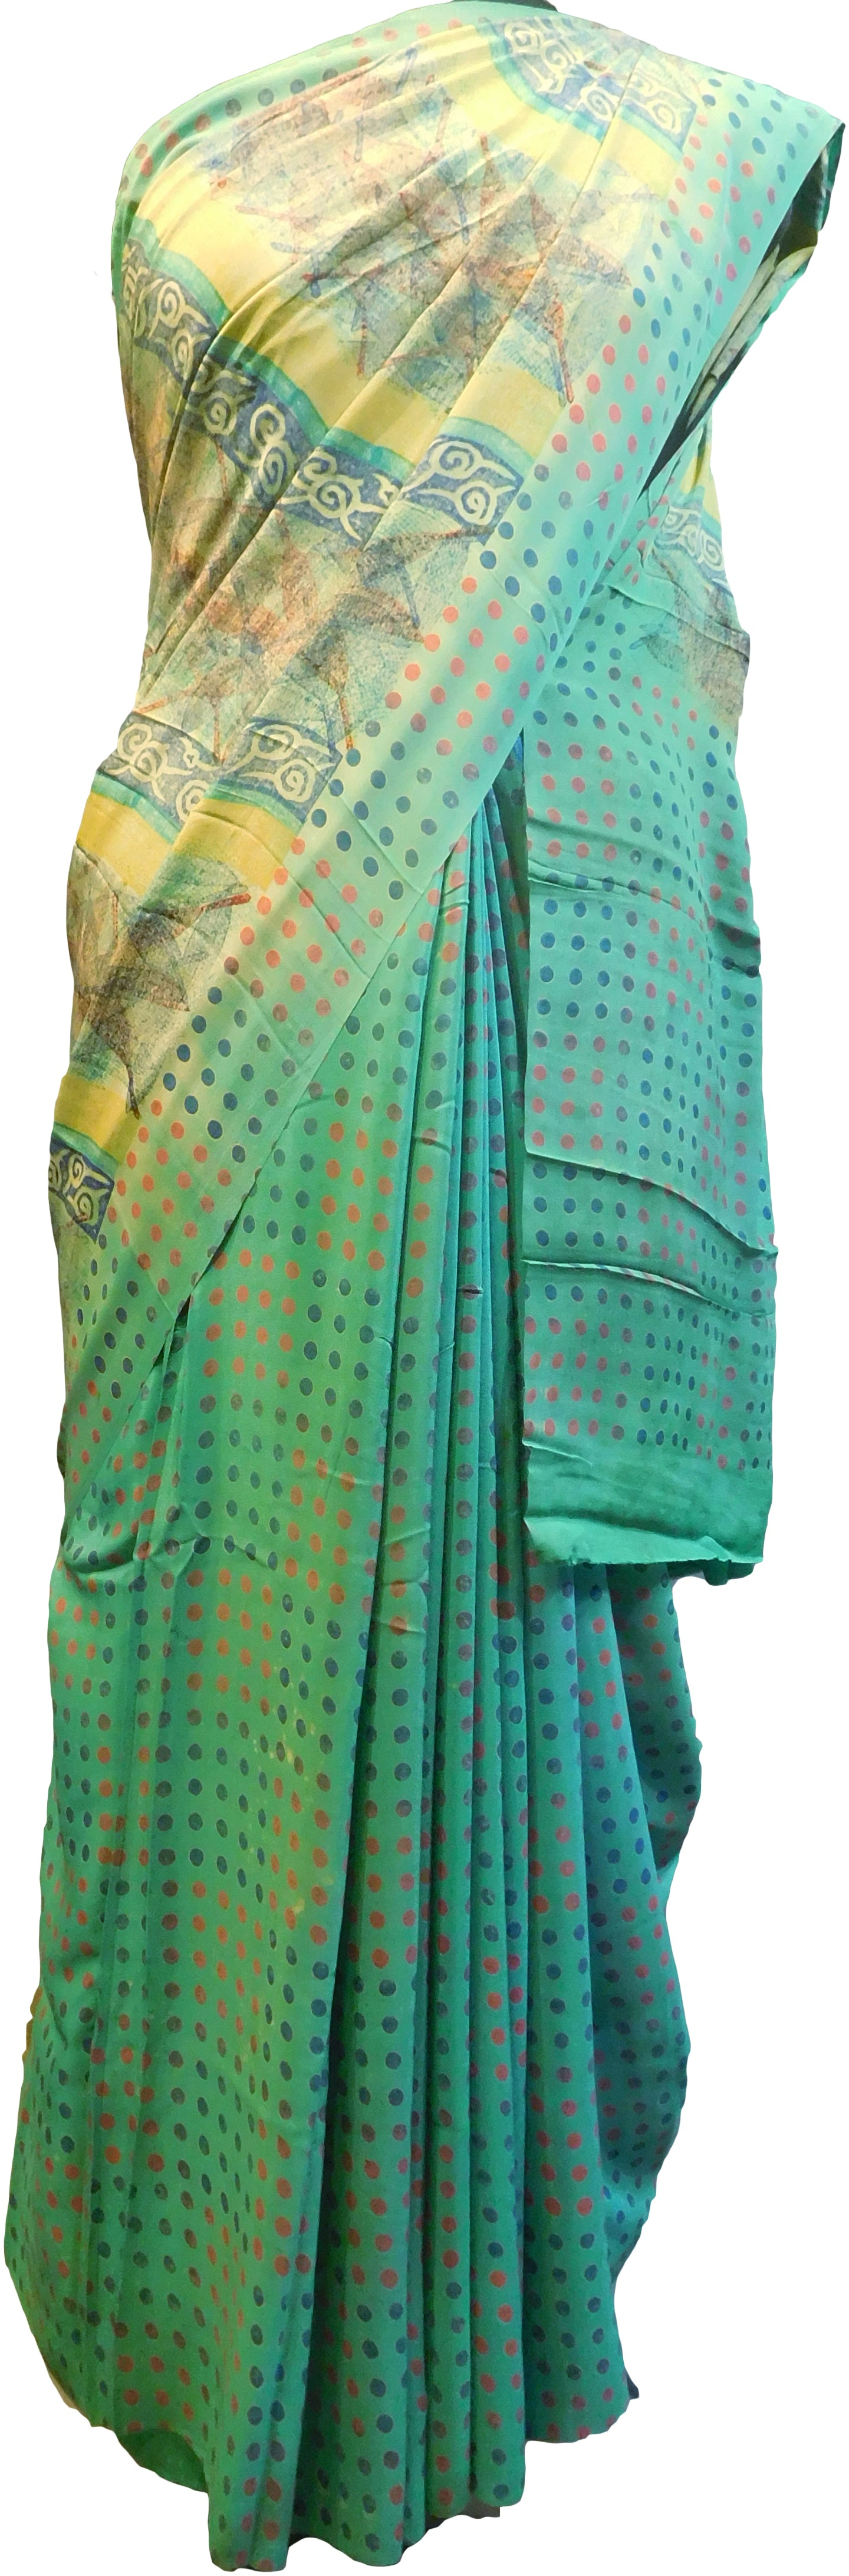 Multicolor Designer Wedding Partywear Pure Crepe Hand Brush Reprinted Kolkata Saree Sari With Blouse Piece  RP274